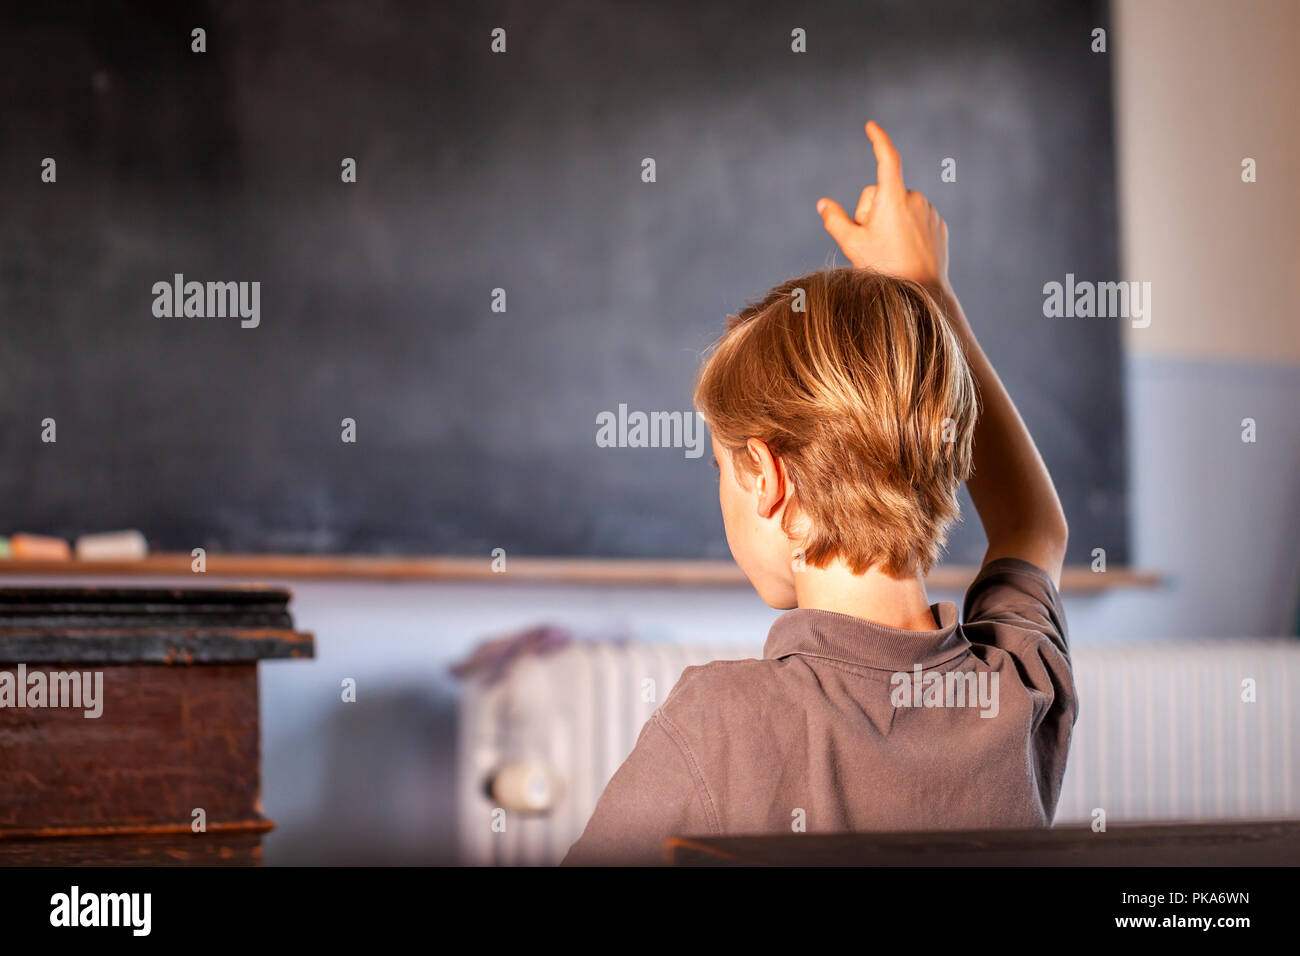 Concept of public primary school education with young boy raising his hand in the classroom. - Stock Image